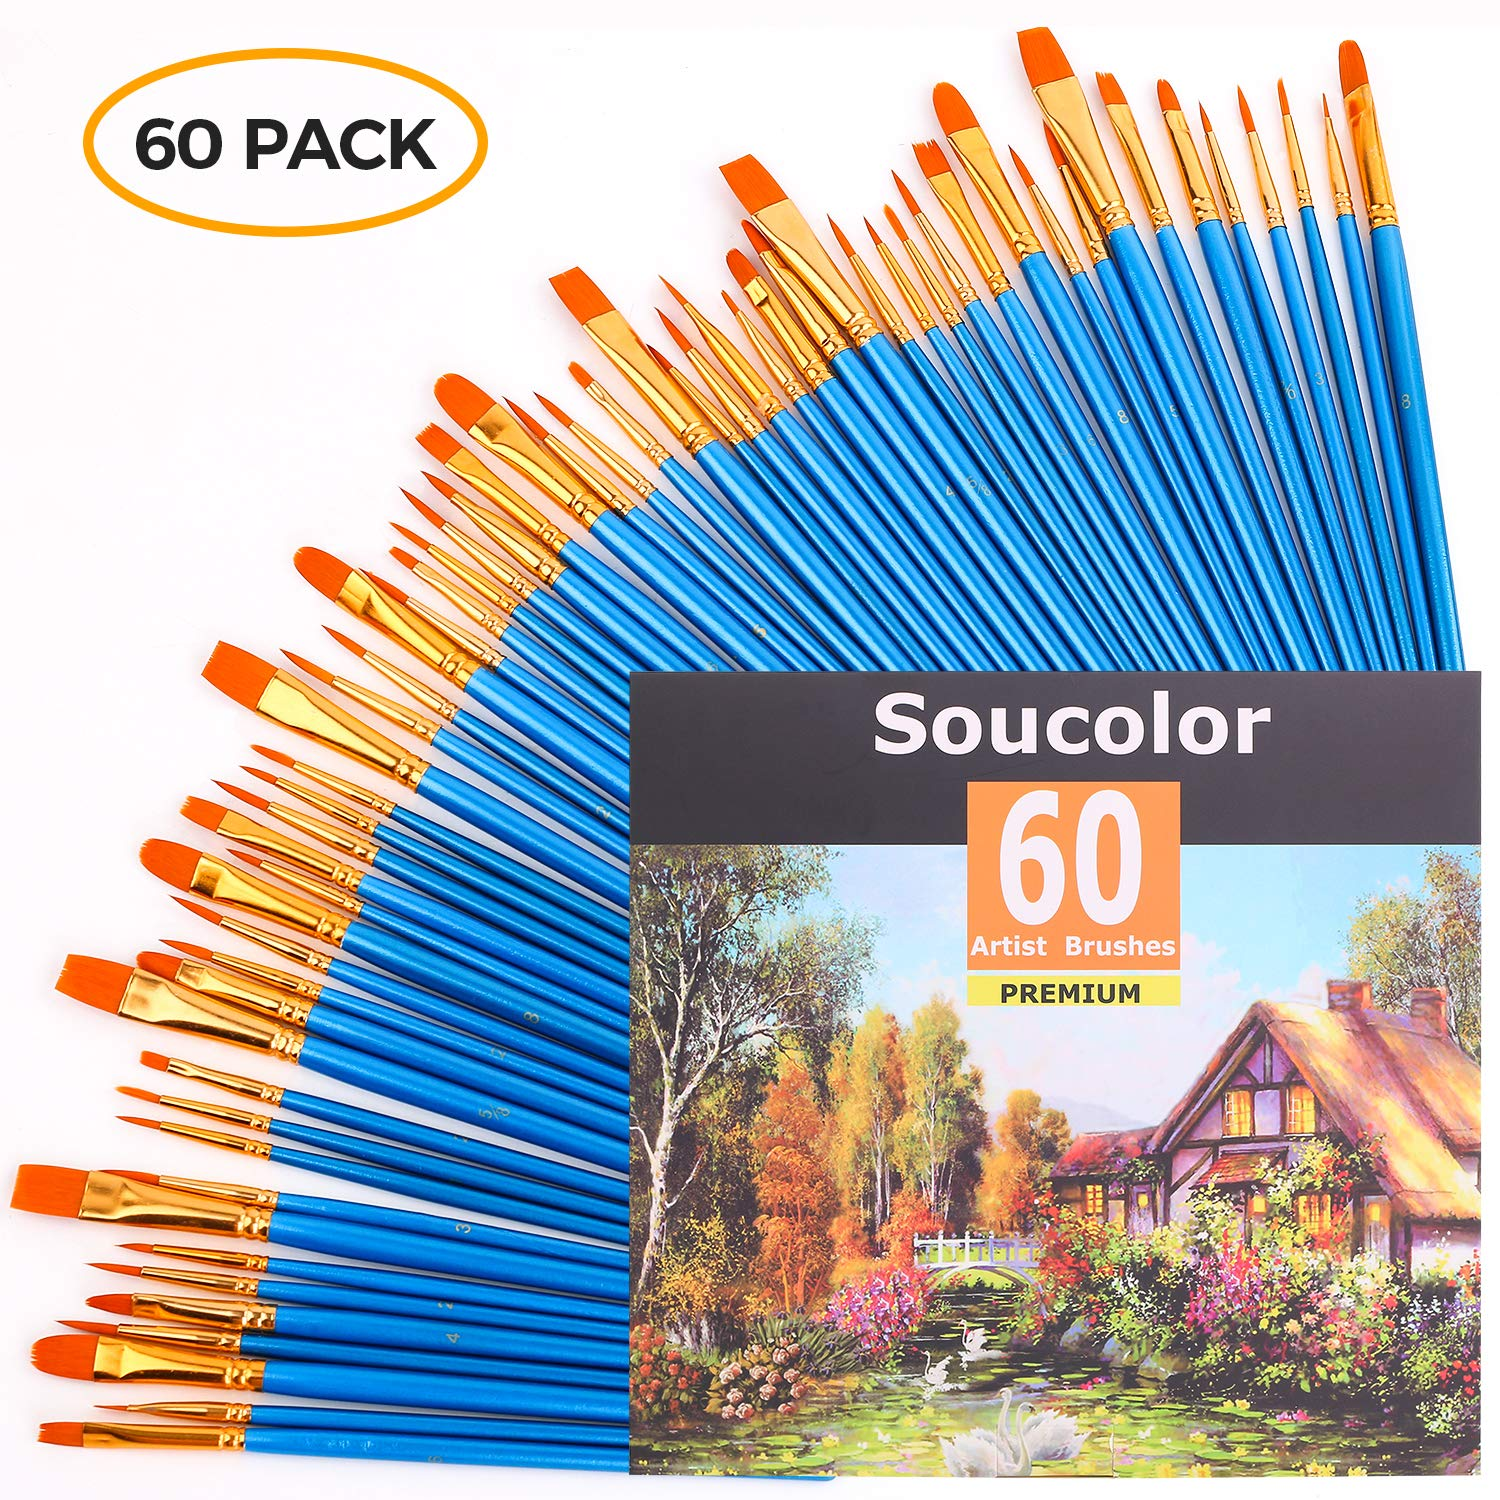 Acrylic Paint Brush Set, 6 packs/60pcs Nylon Hair Brushes for All Purpose Oil Watercolor Painting Artist Professional Kits Soucolor